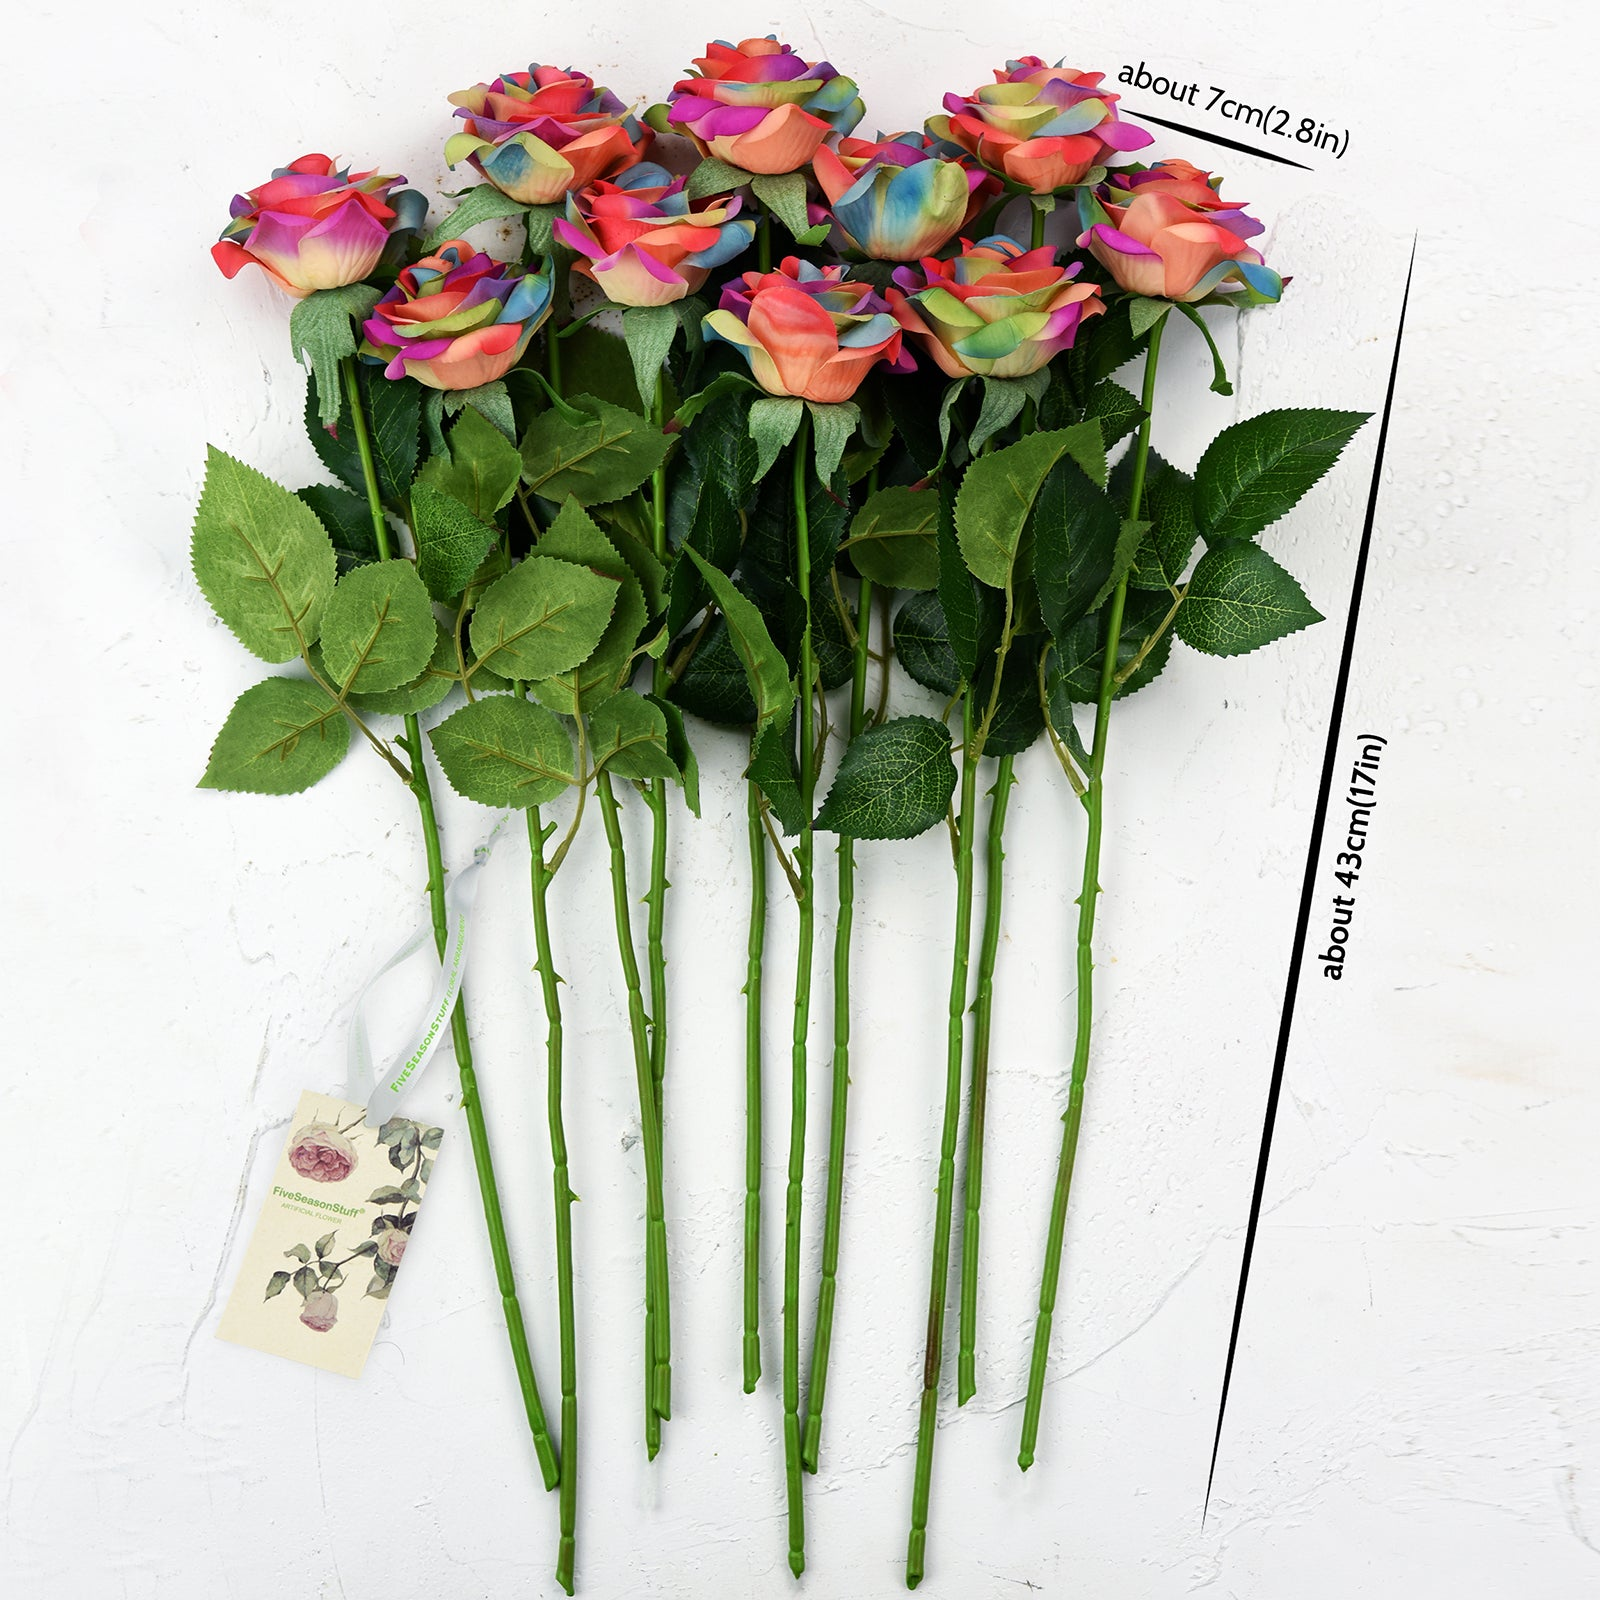 Rainbow Real Touch Silk Artificial Flowers 'Petals Feel and Look like Fresh Roses 10 Stems